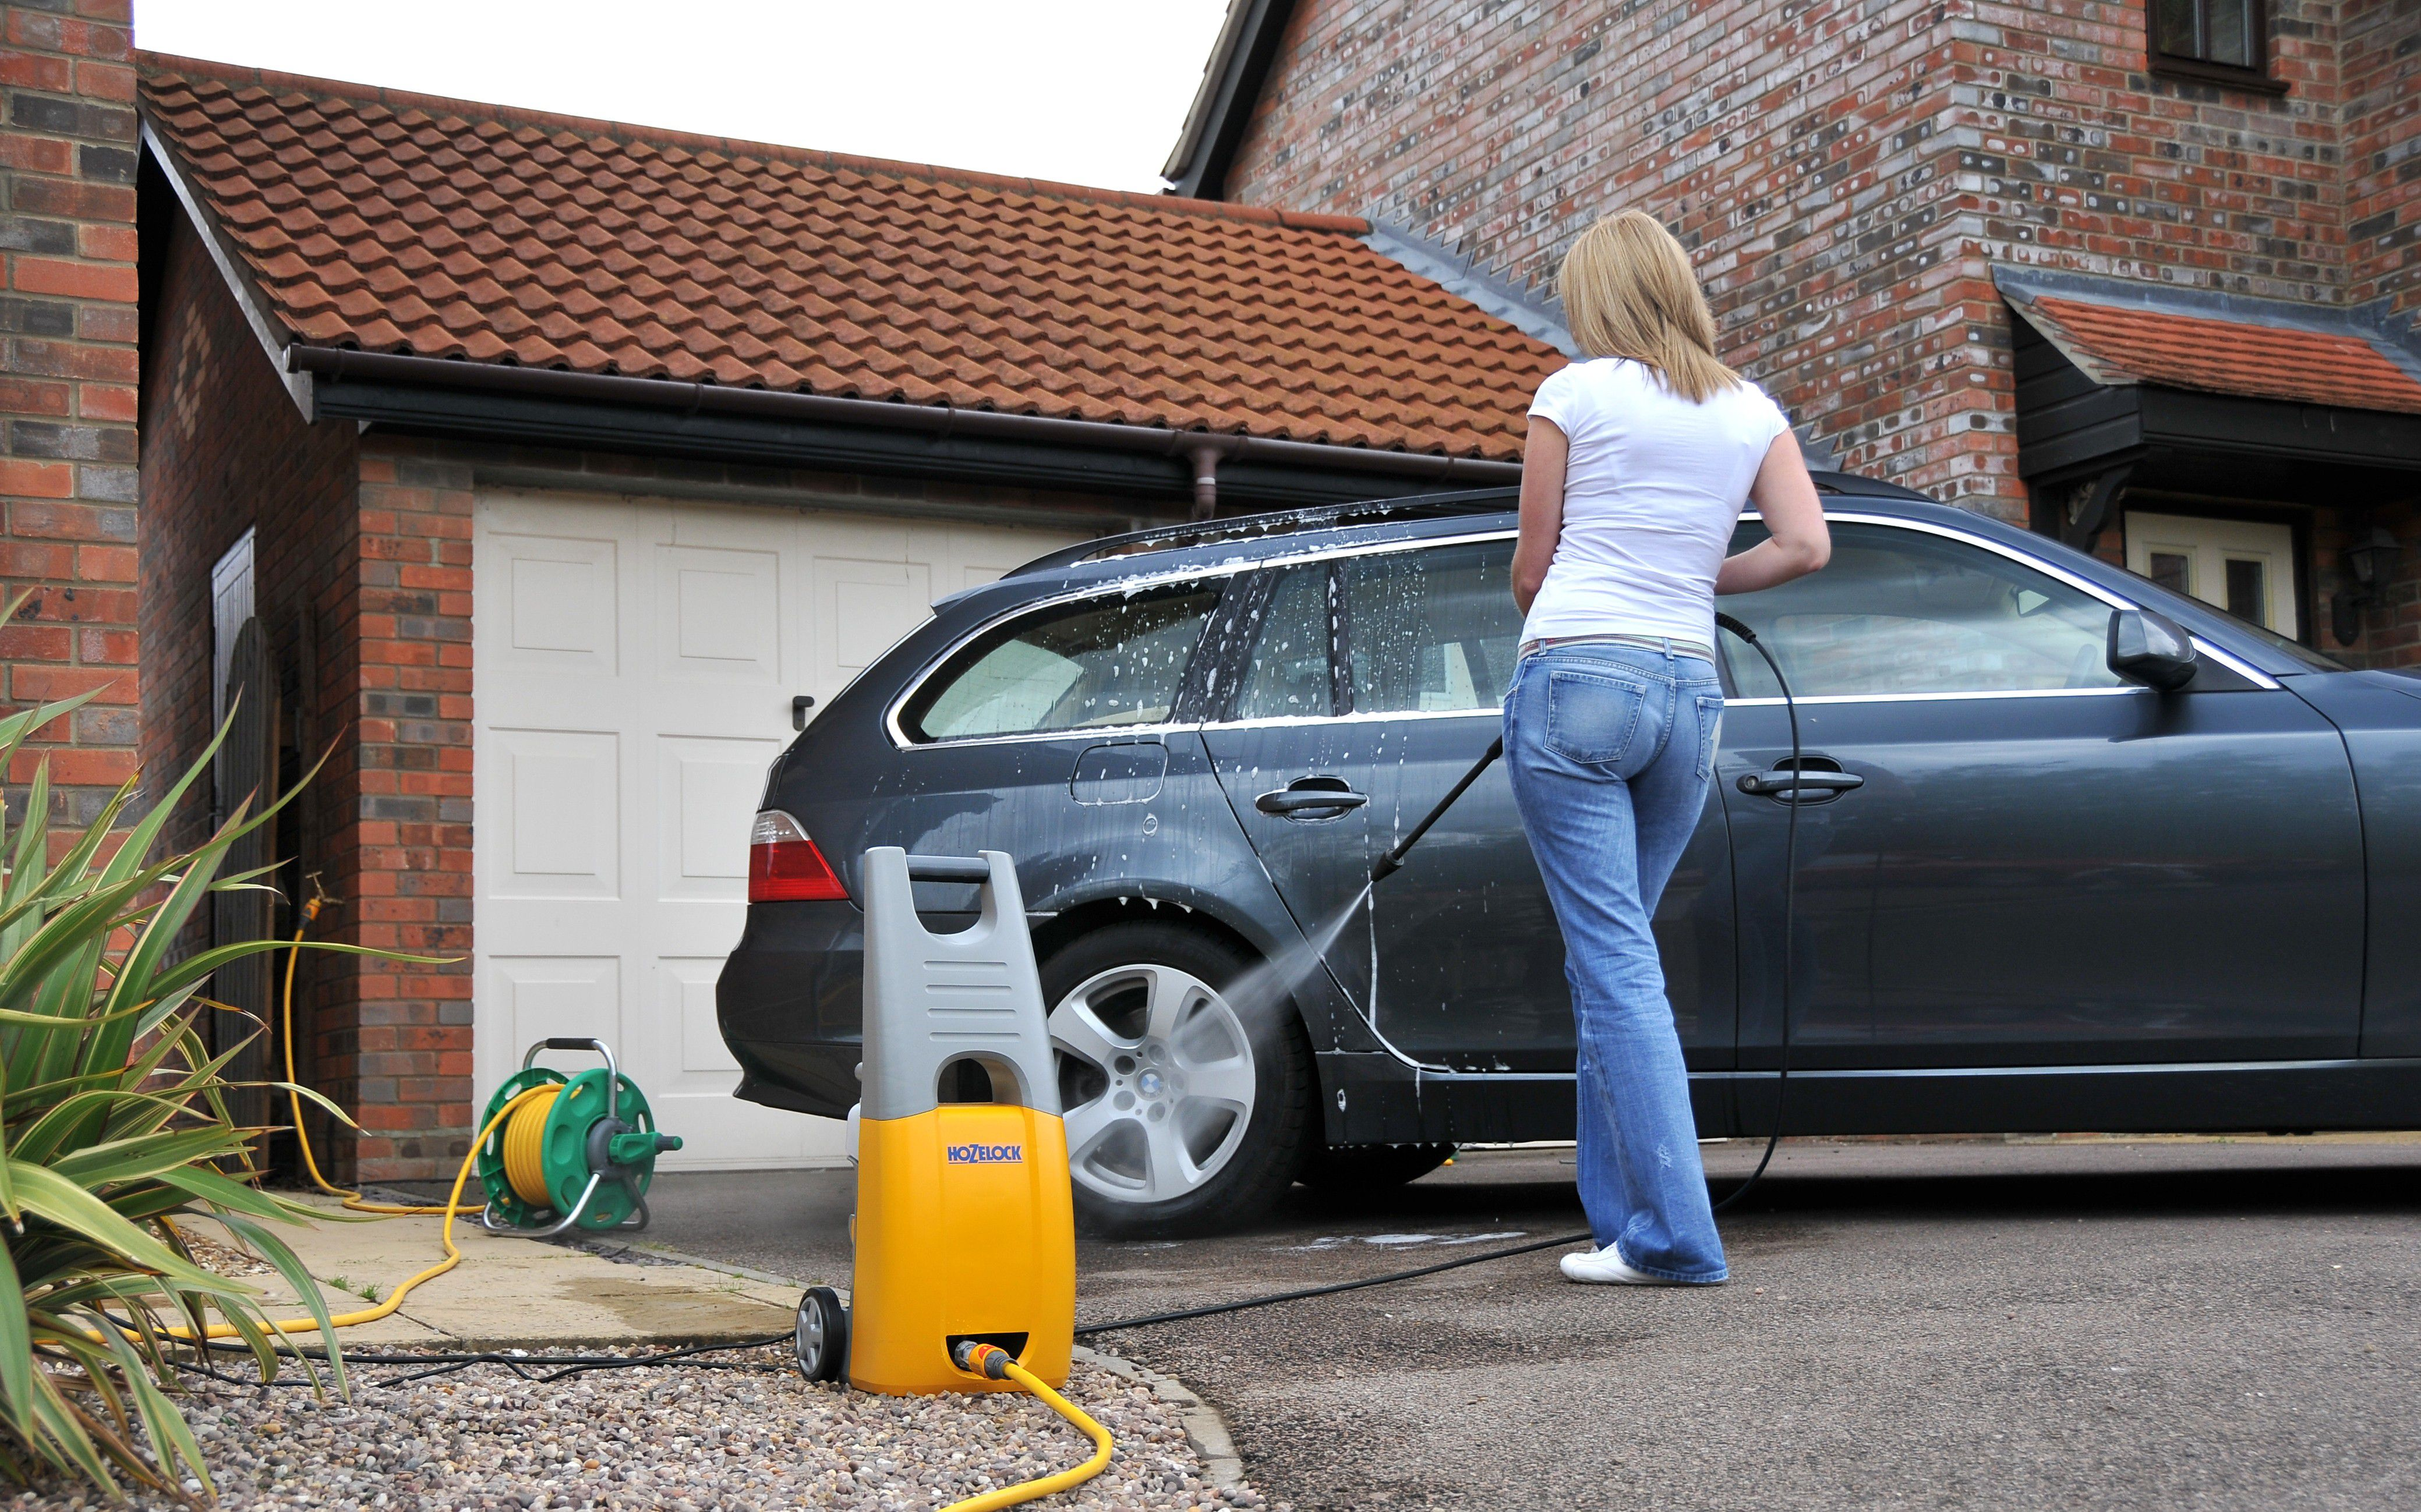 Best Pressure Washer For Home Uses